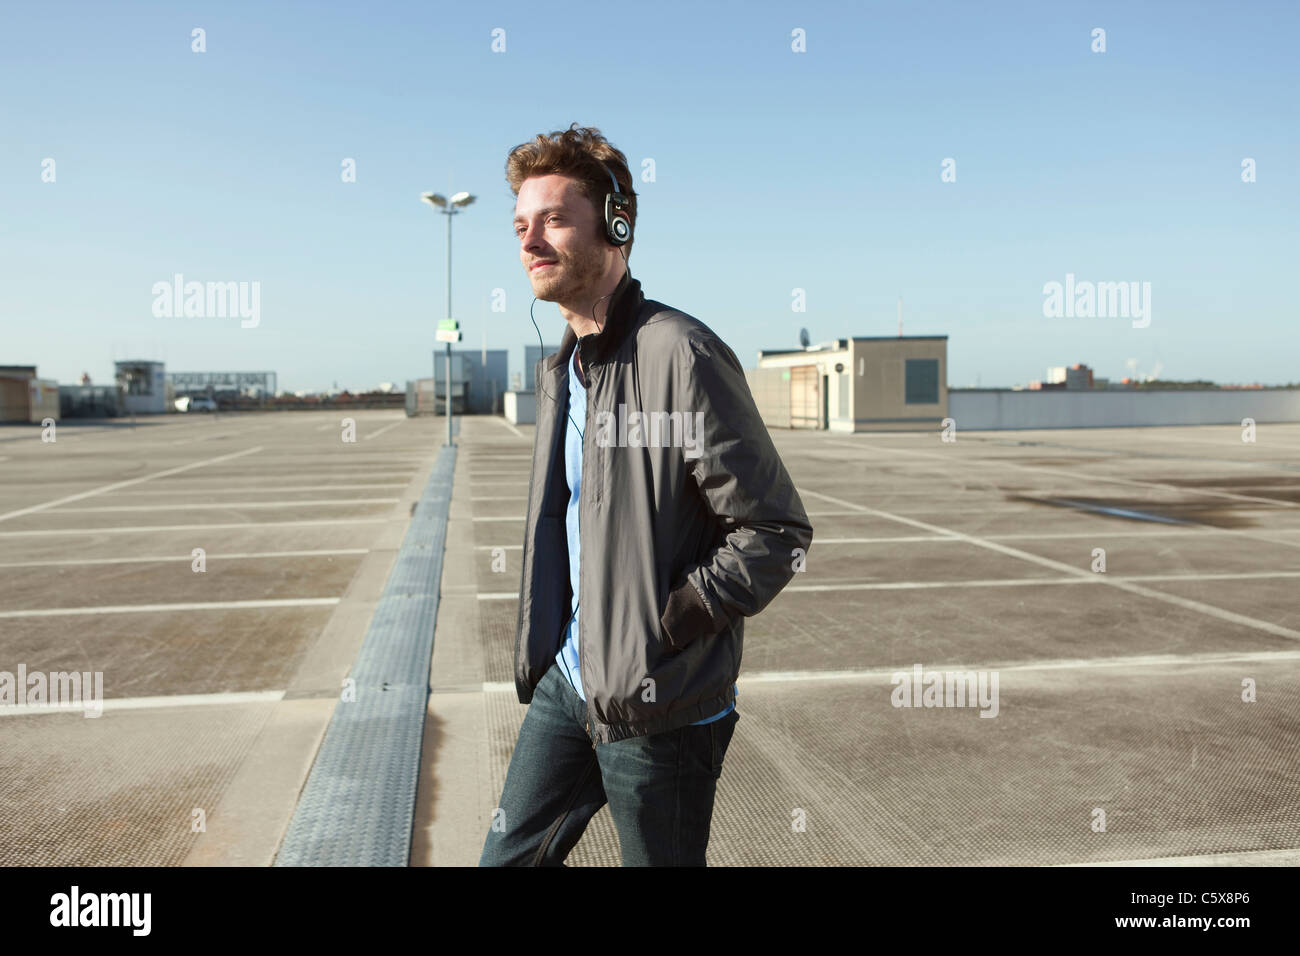 Germany, Berlin, Young man on deserted parking level wearing headphones - Stock Image